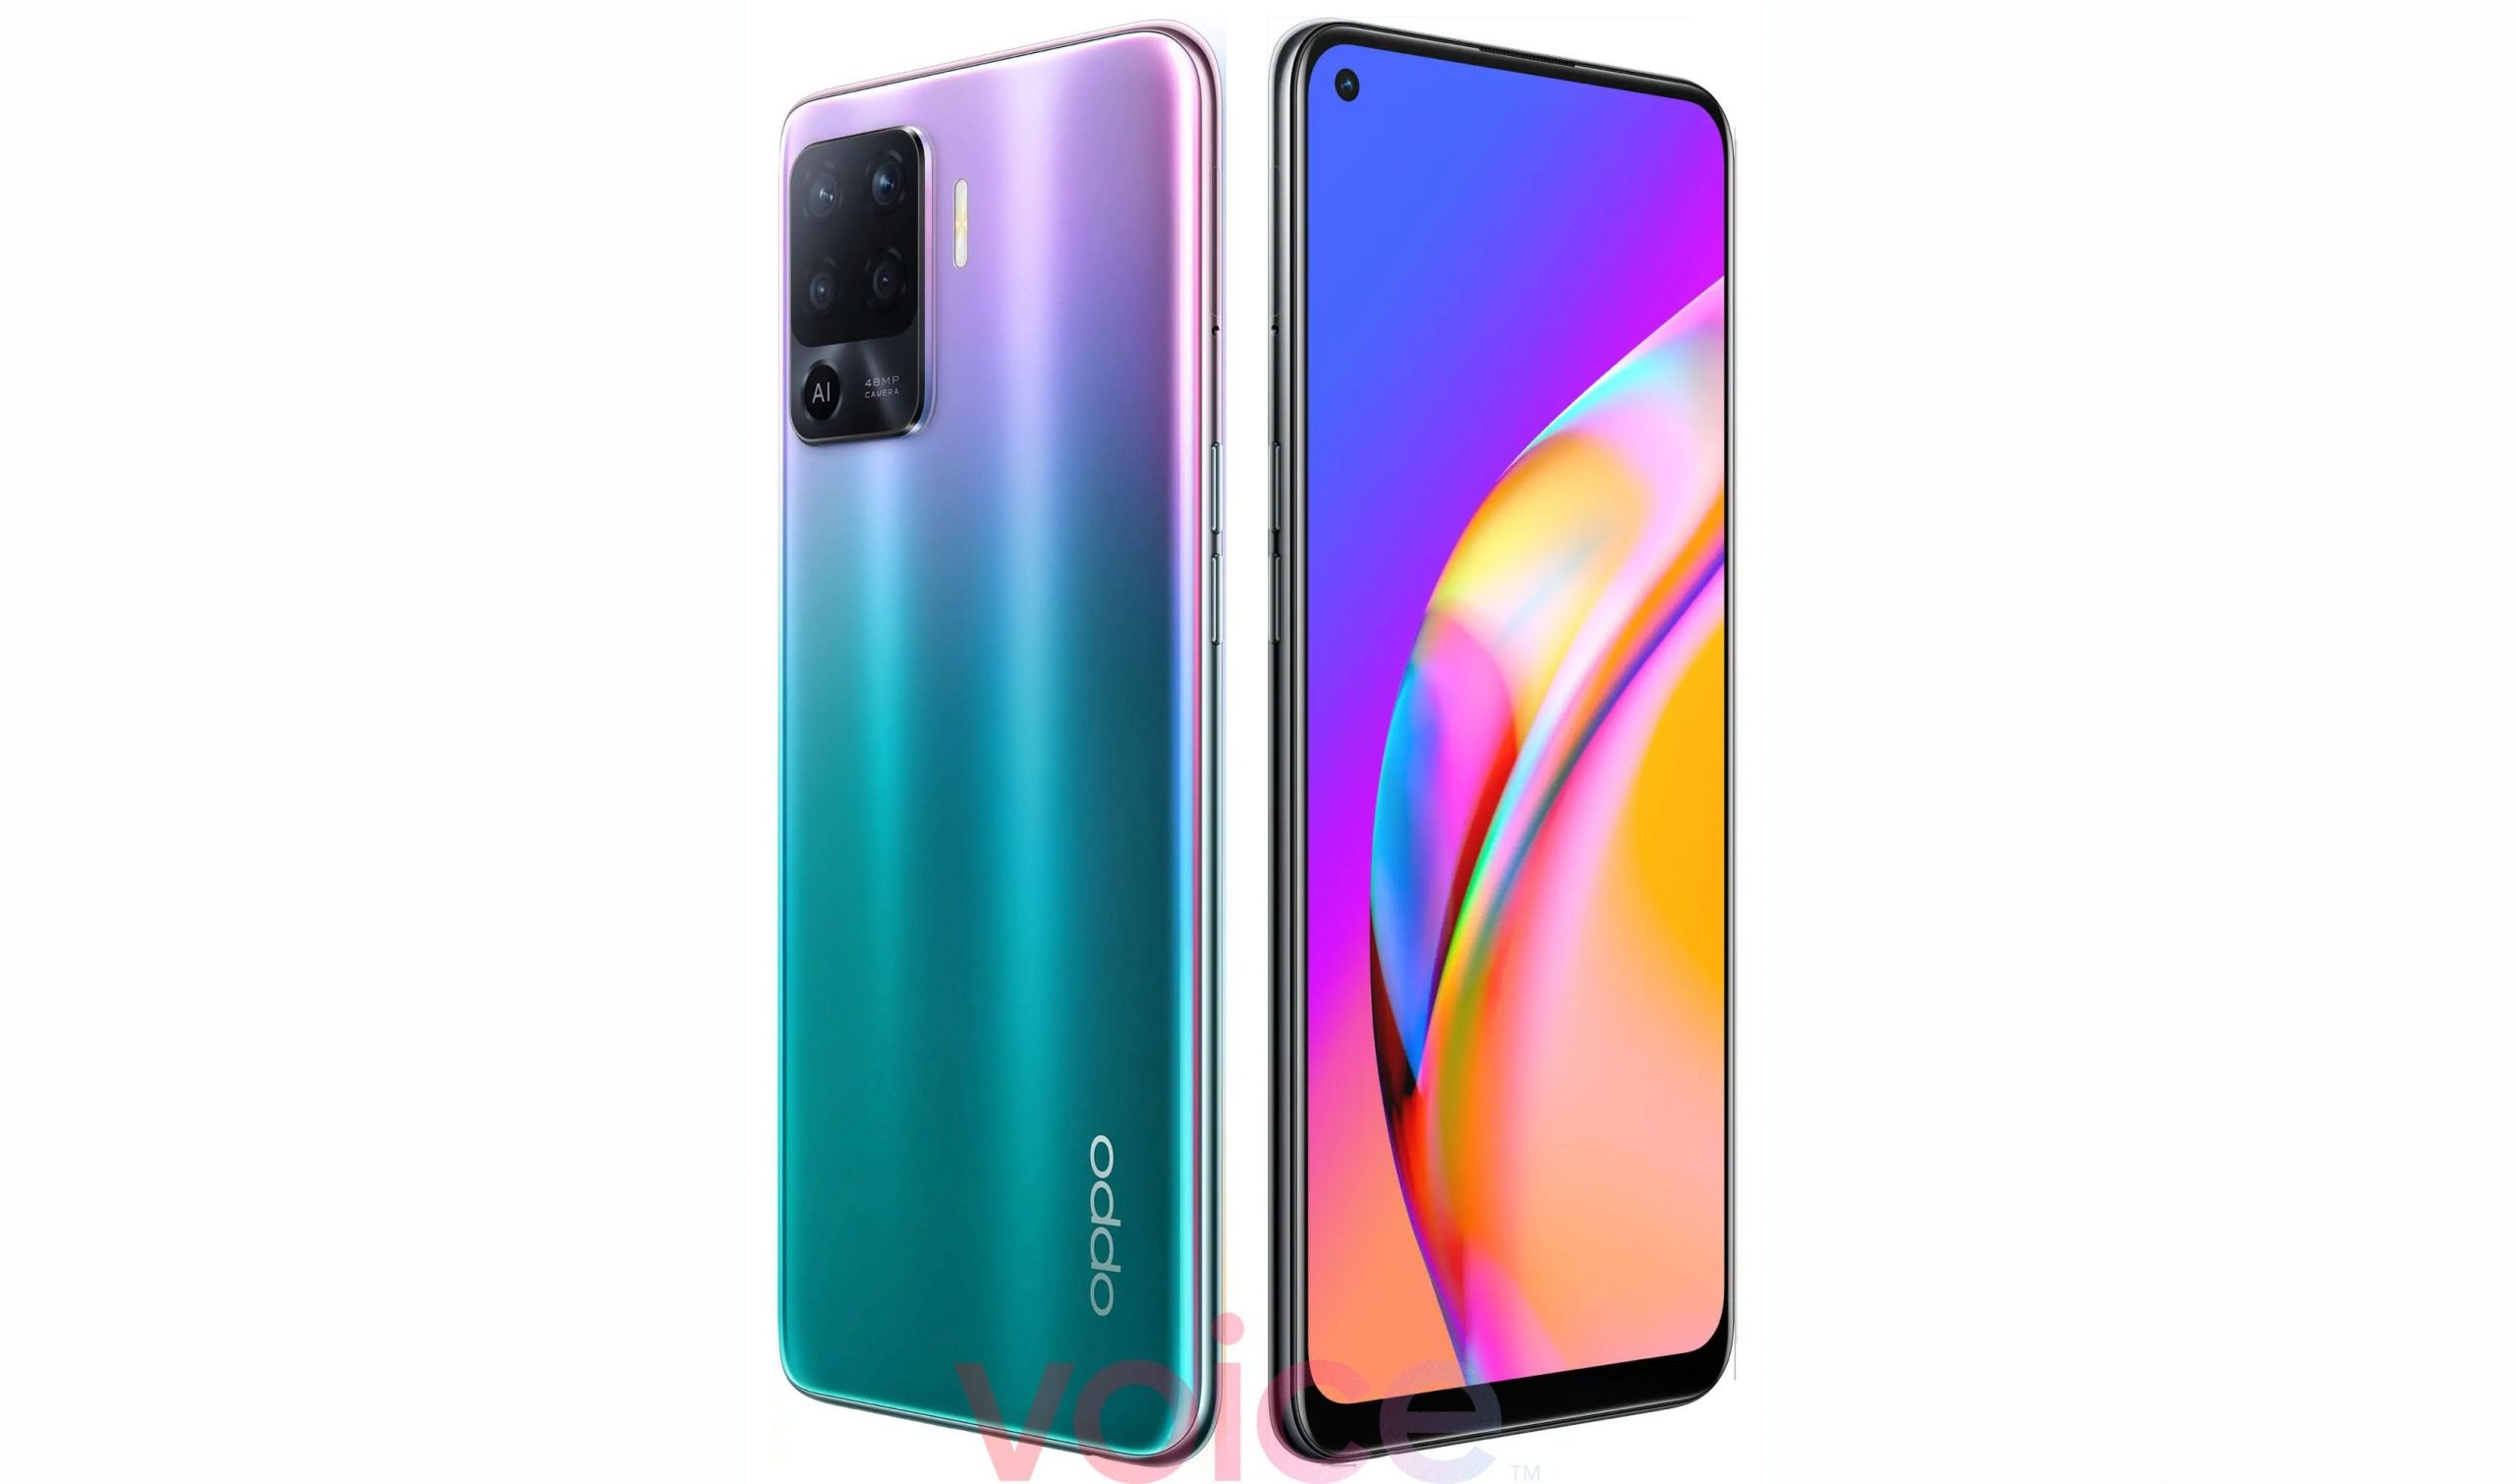 OPPO A94 , OPPO A94 Cam ,OPPO A94 Camera test,OPPO A94 Screen Repair, OPPO A94 Camera, OPPO A94 Unboxing, OPPO A94 Hands-on